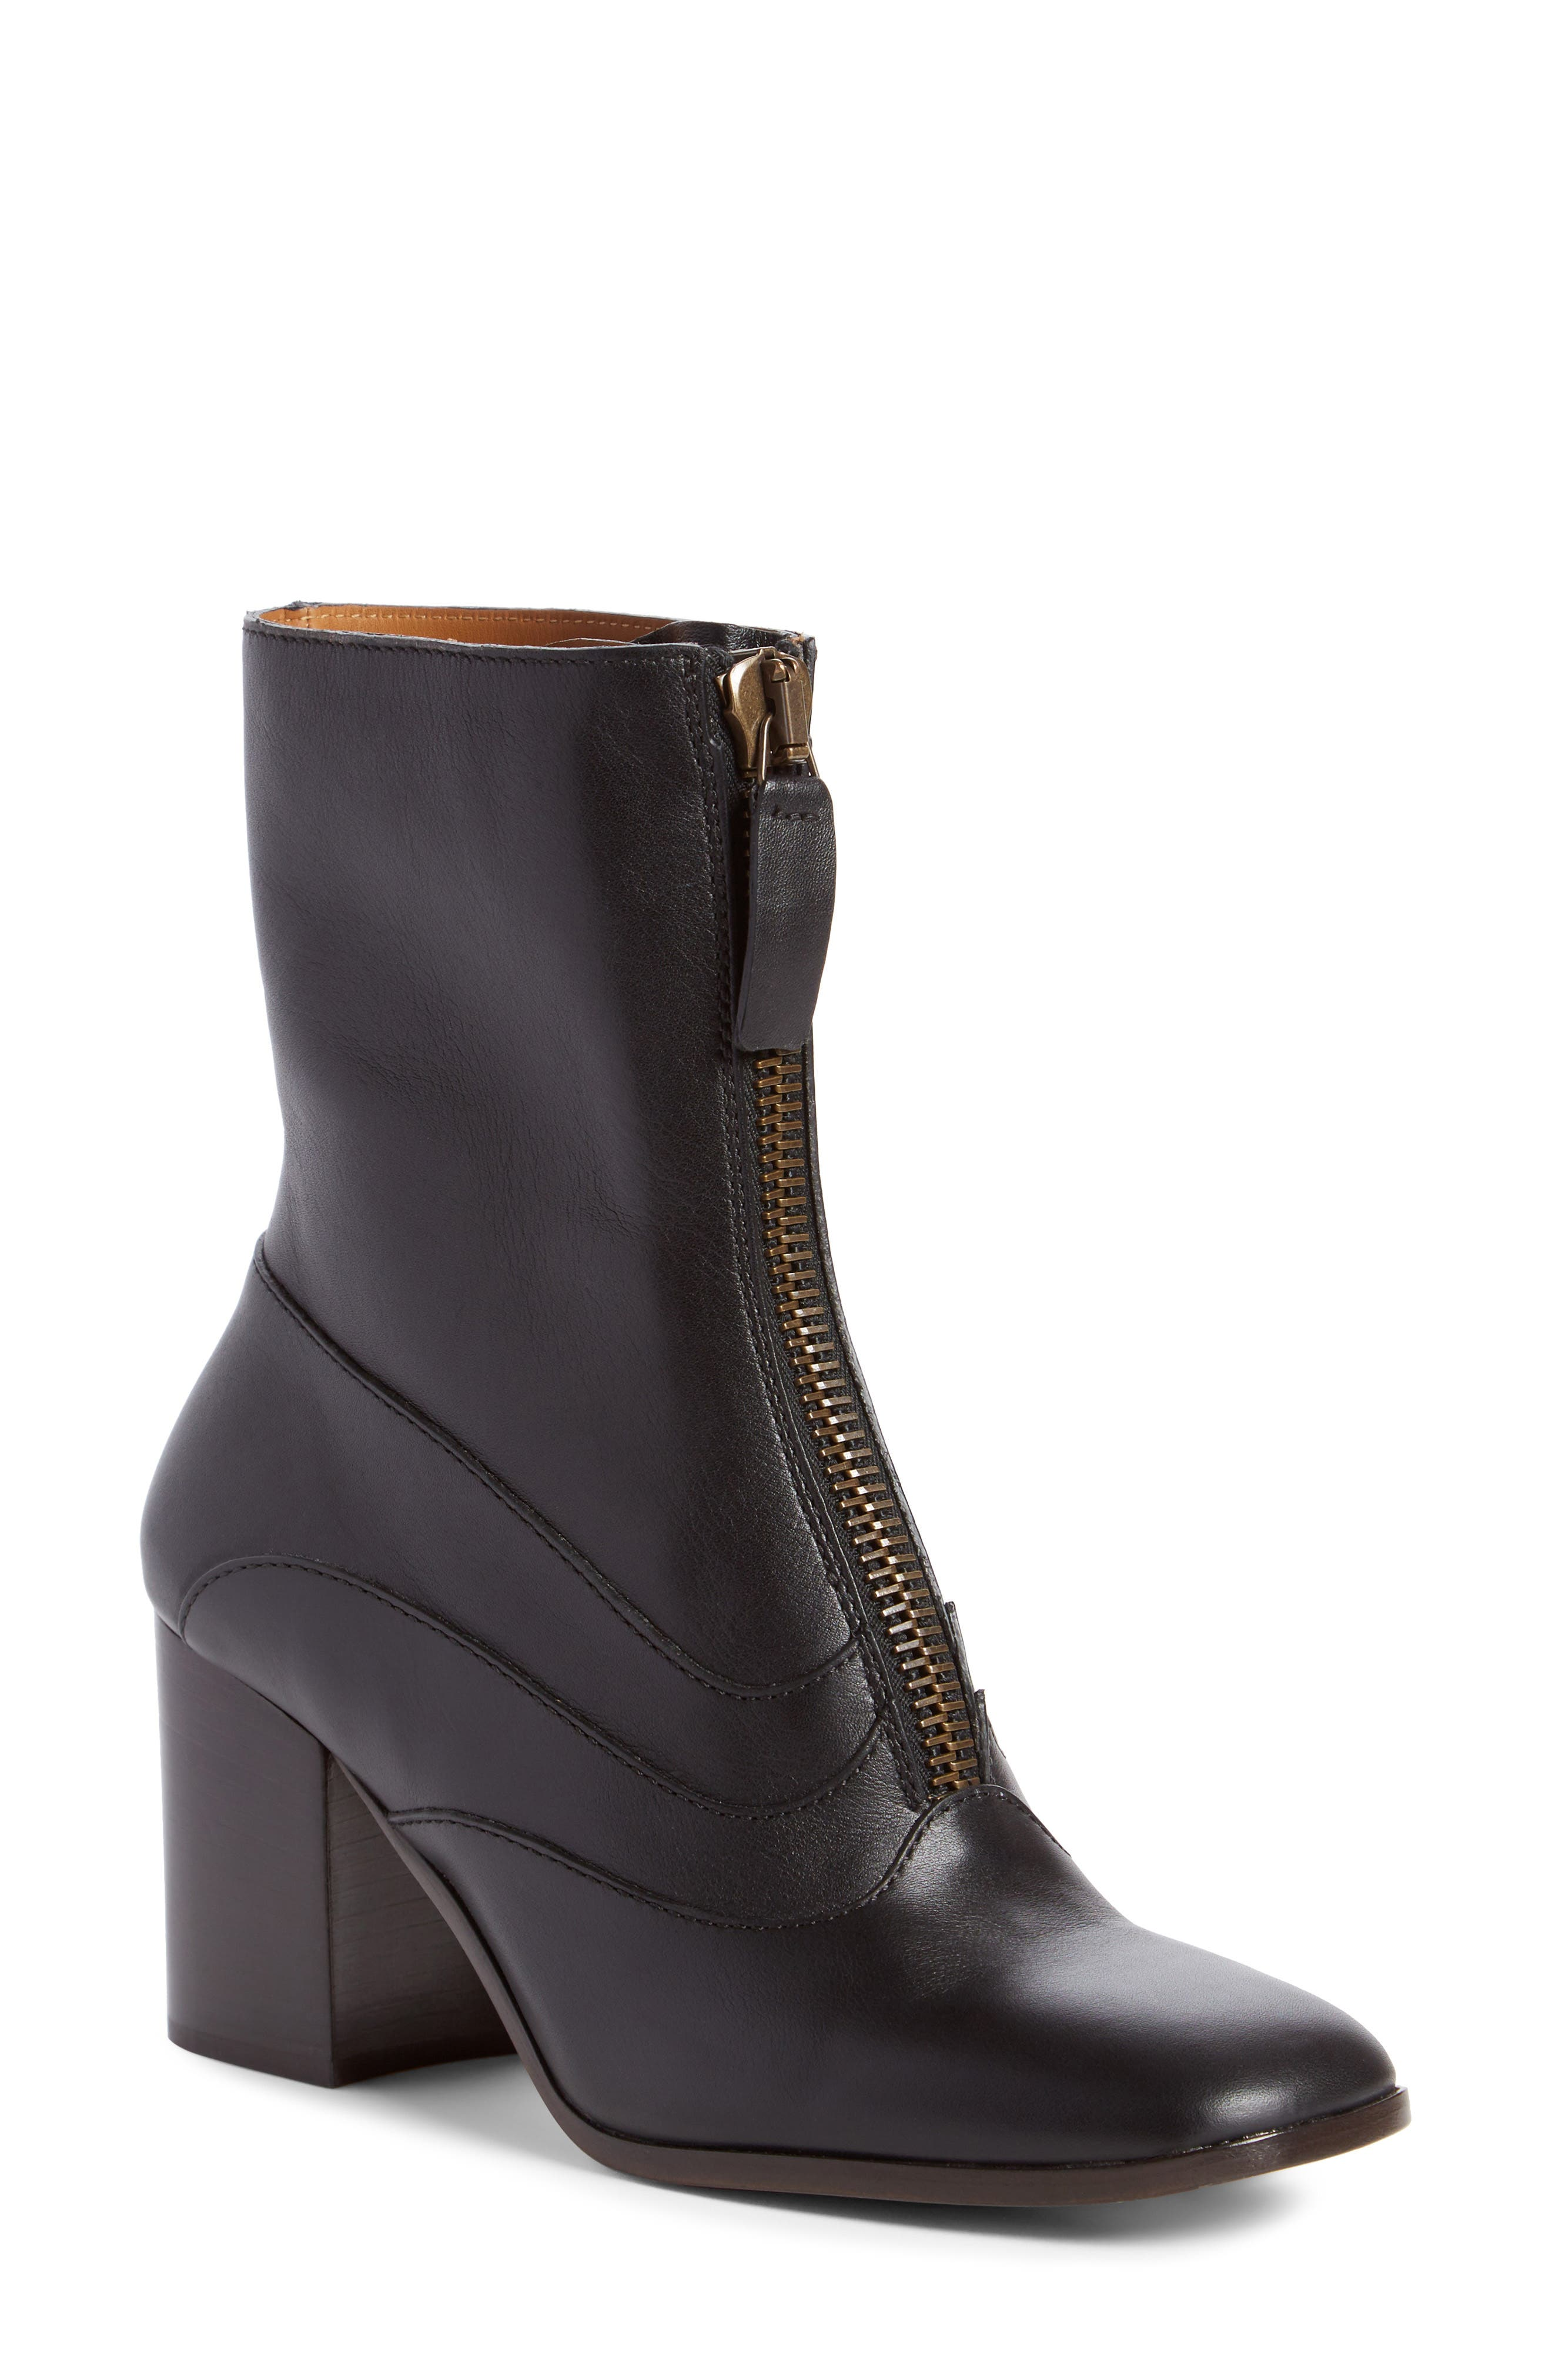 Qacey Square Toe Boot,                         Main,                         color, Black